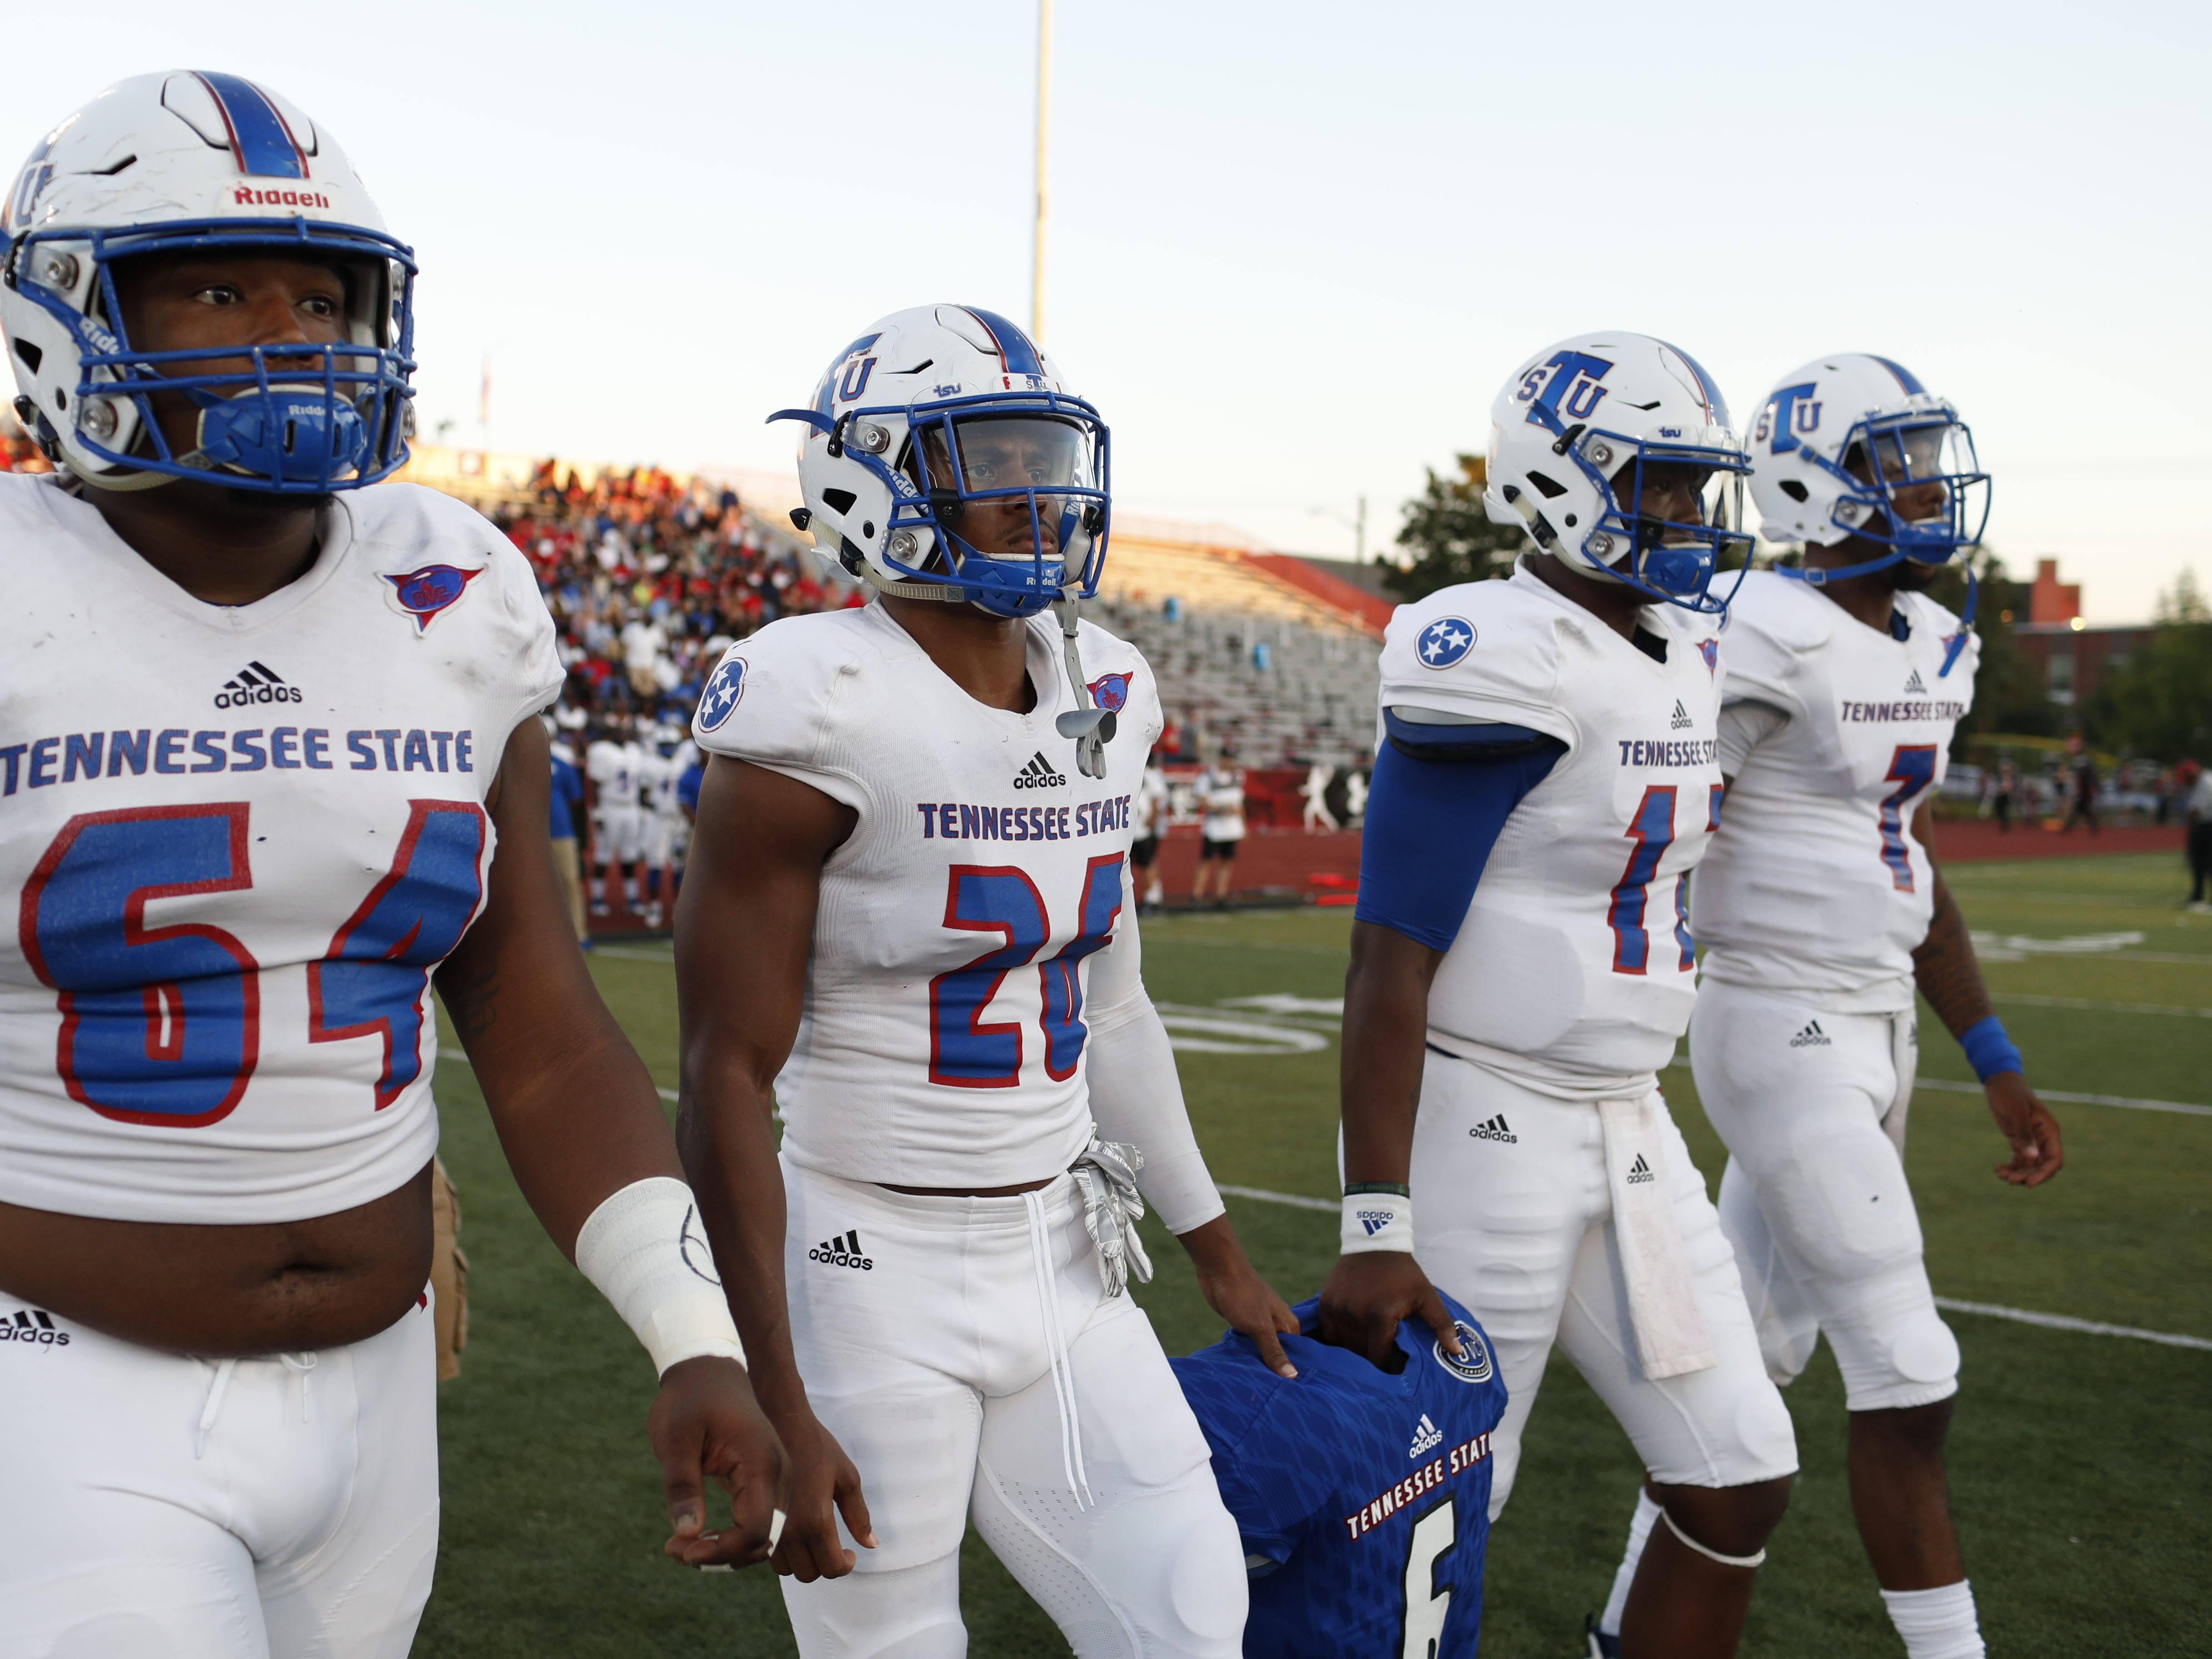 Tennessee State football captains walk to the coin toss before the Tigers' game at Austin Peay on Saturday, October 6, 2018.